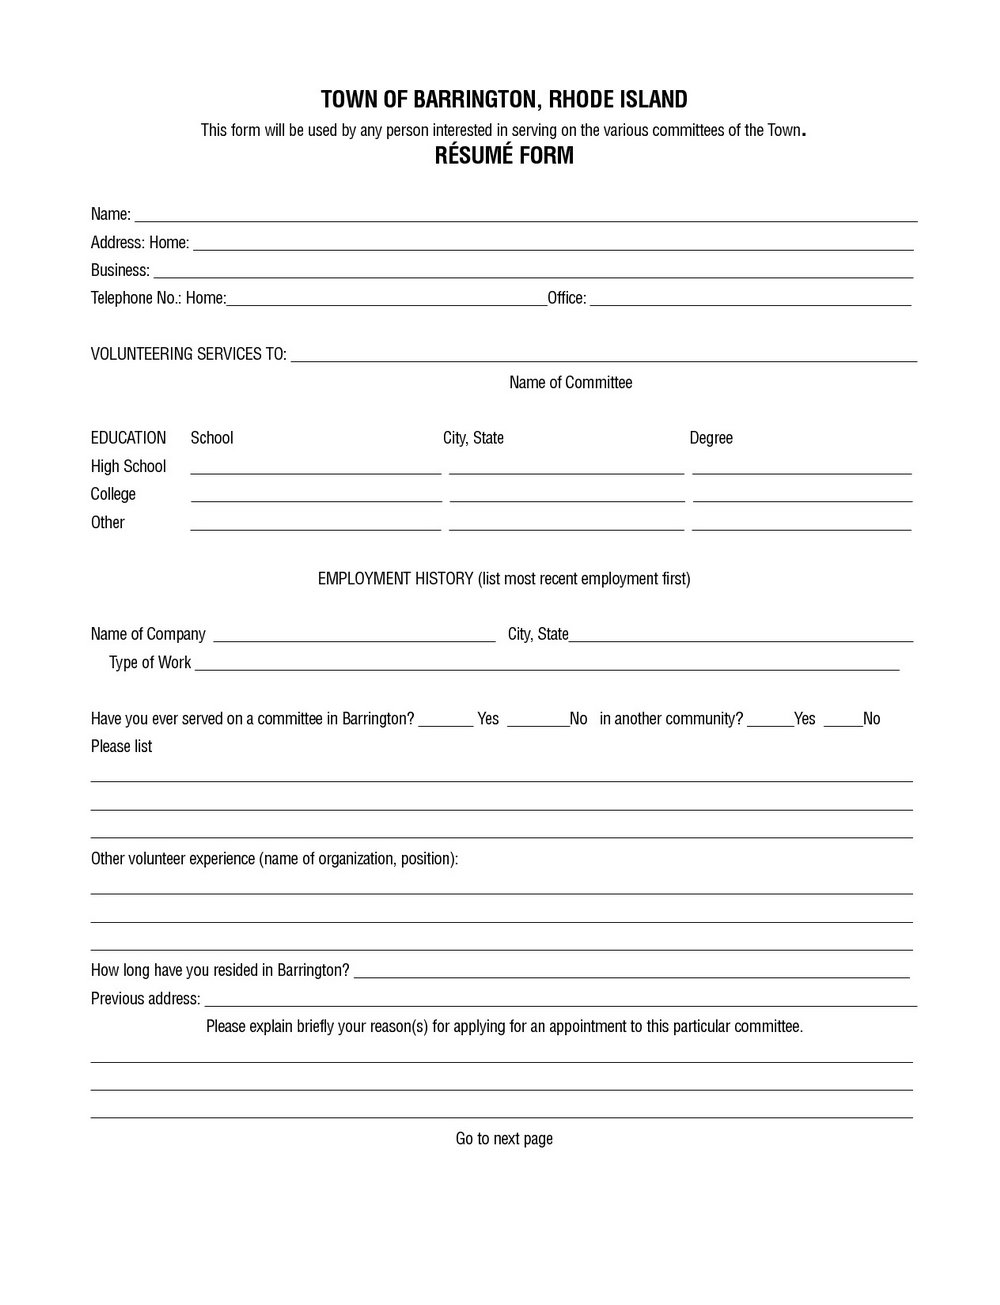 Free Printable Resume Form